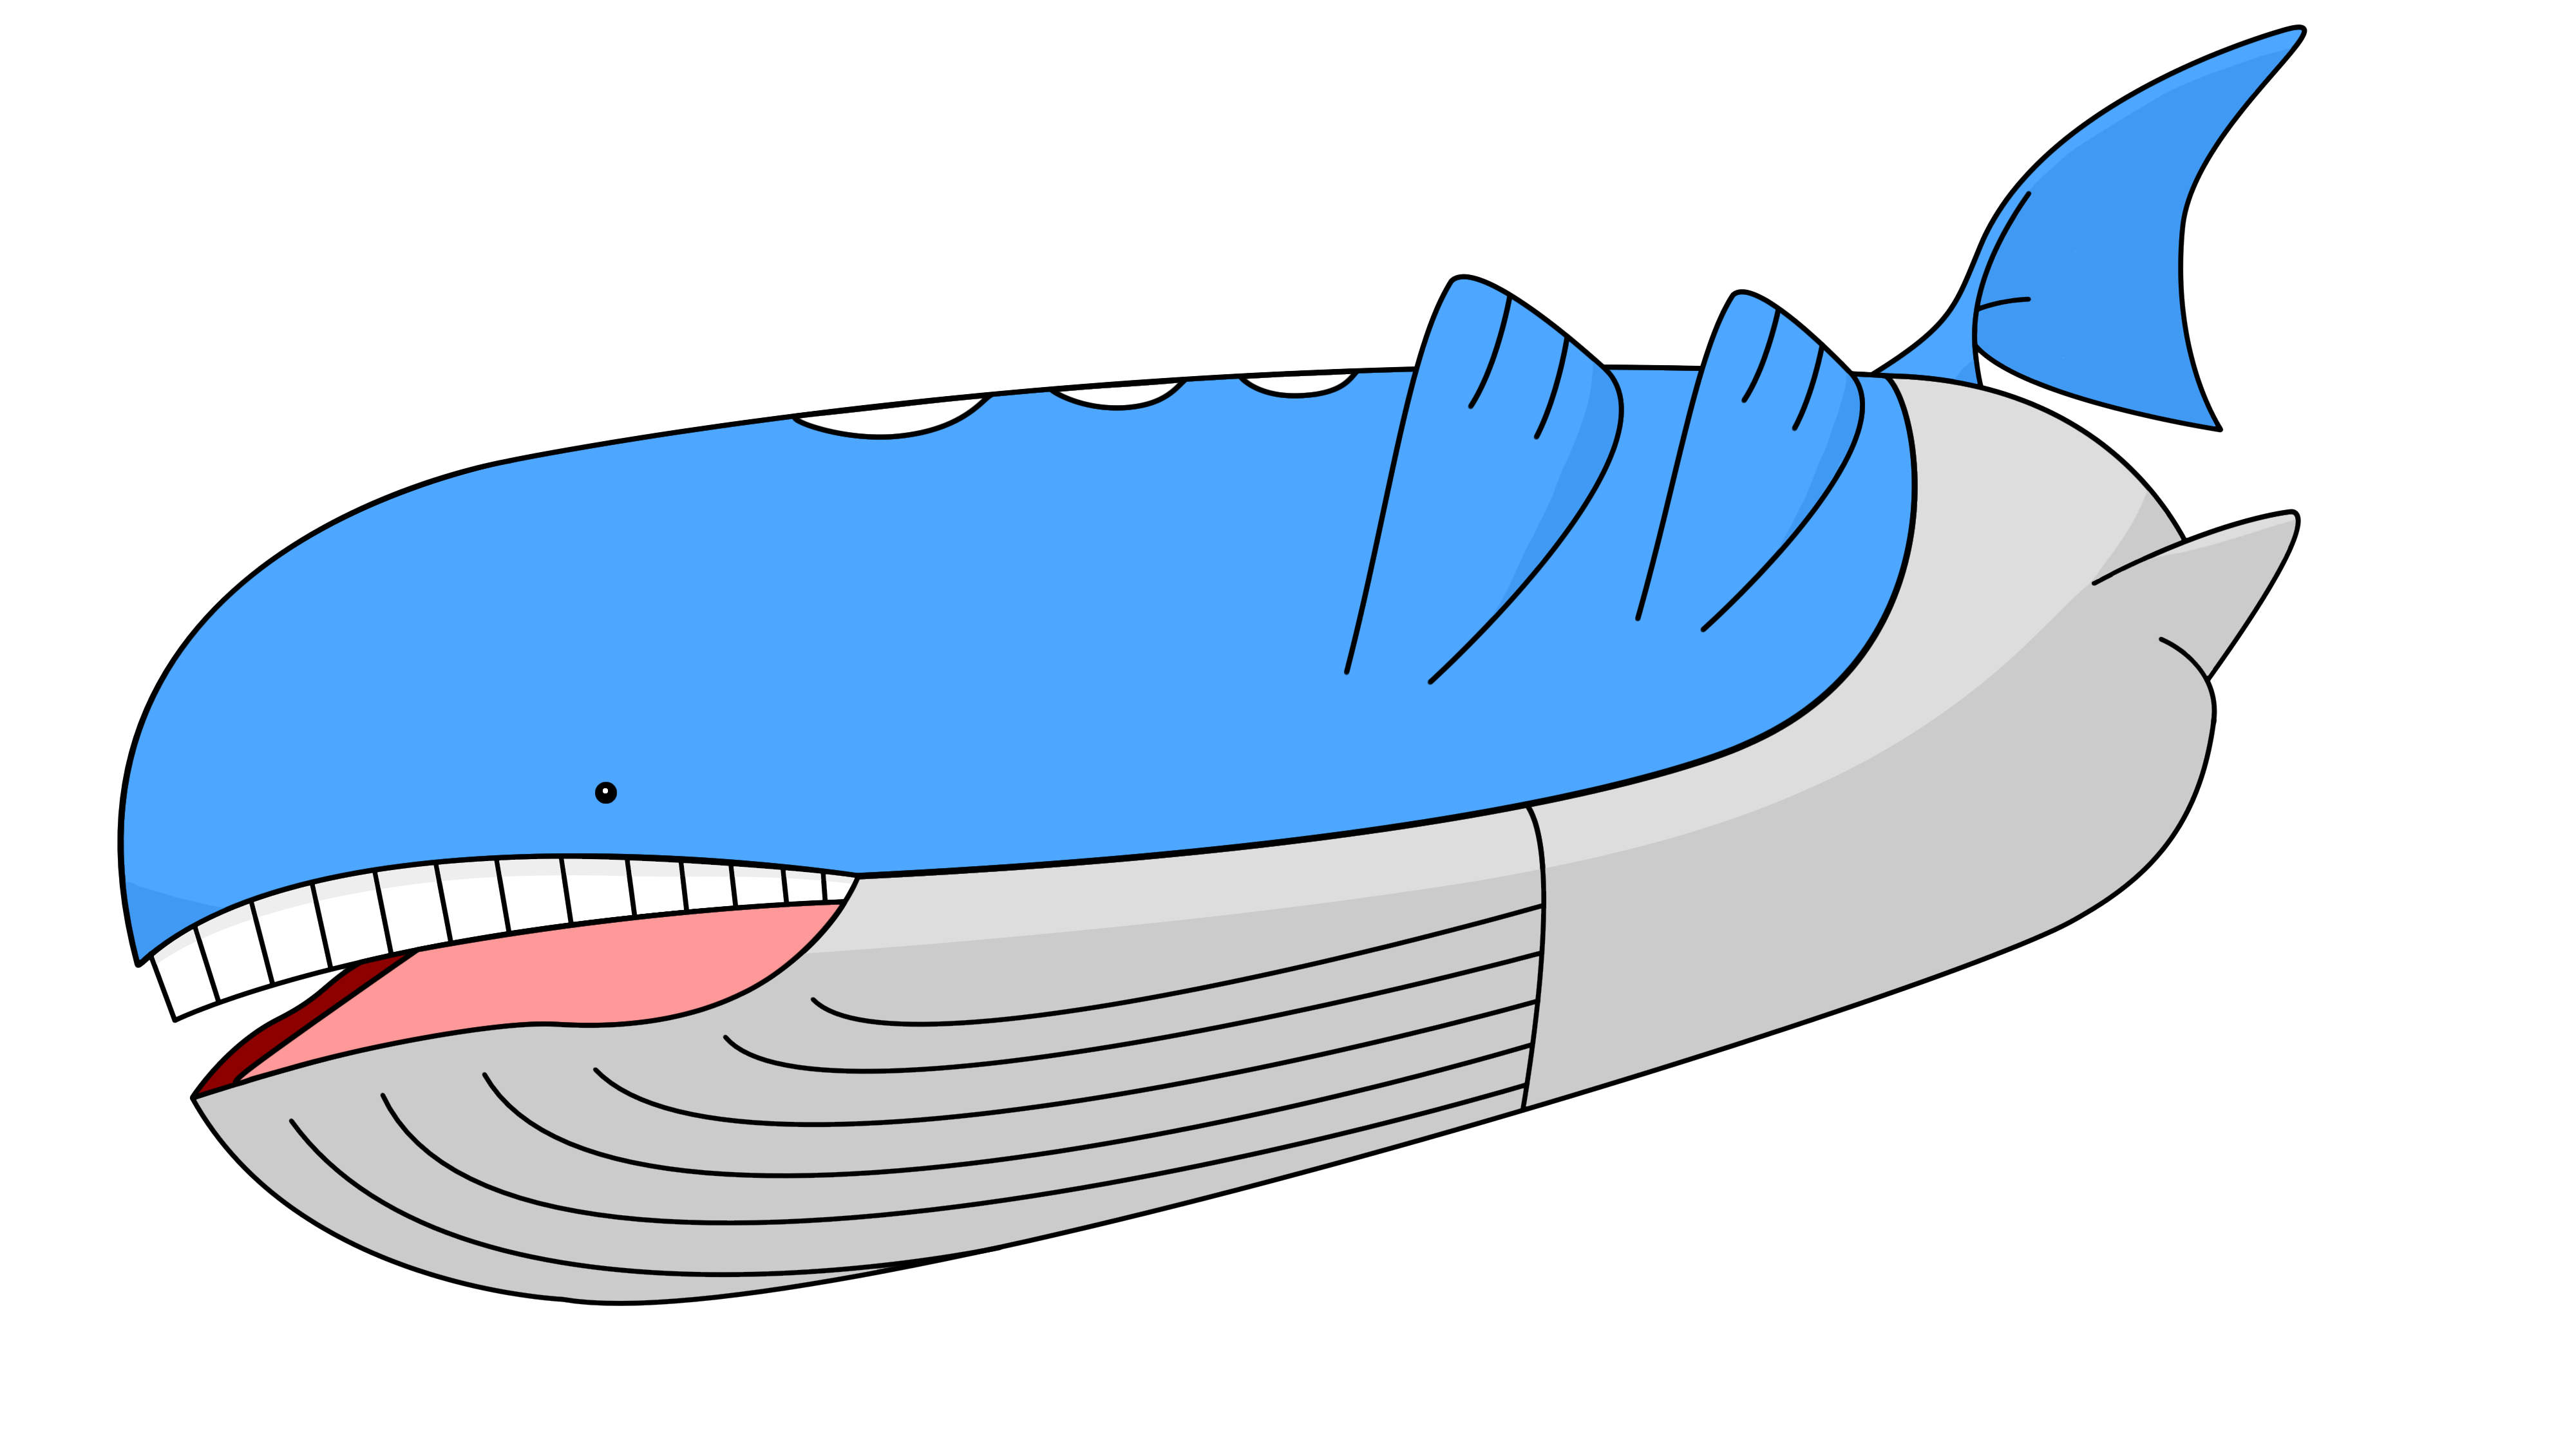 Wailord | Full HD Pictures Wailord Pokemon Size